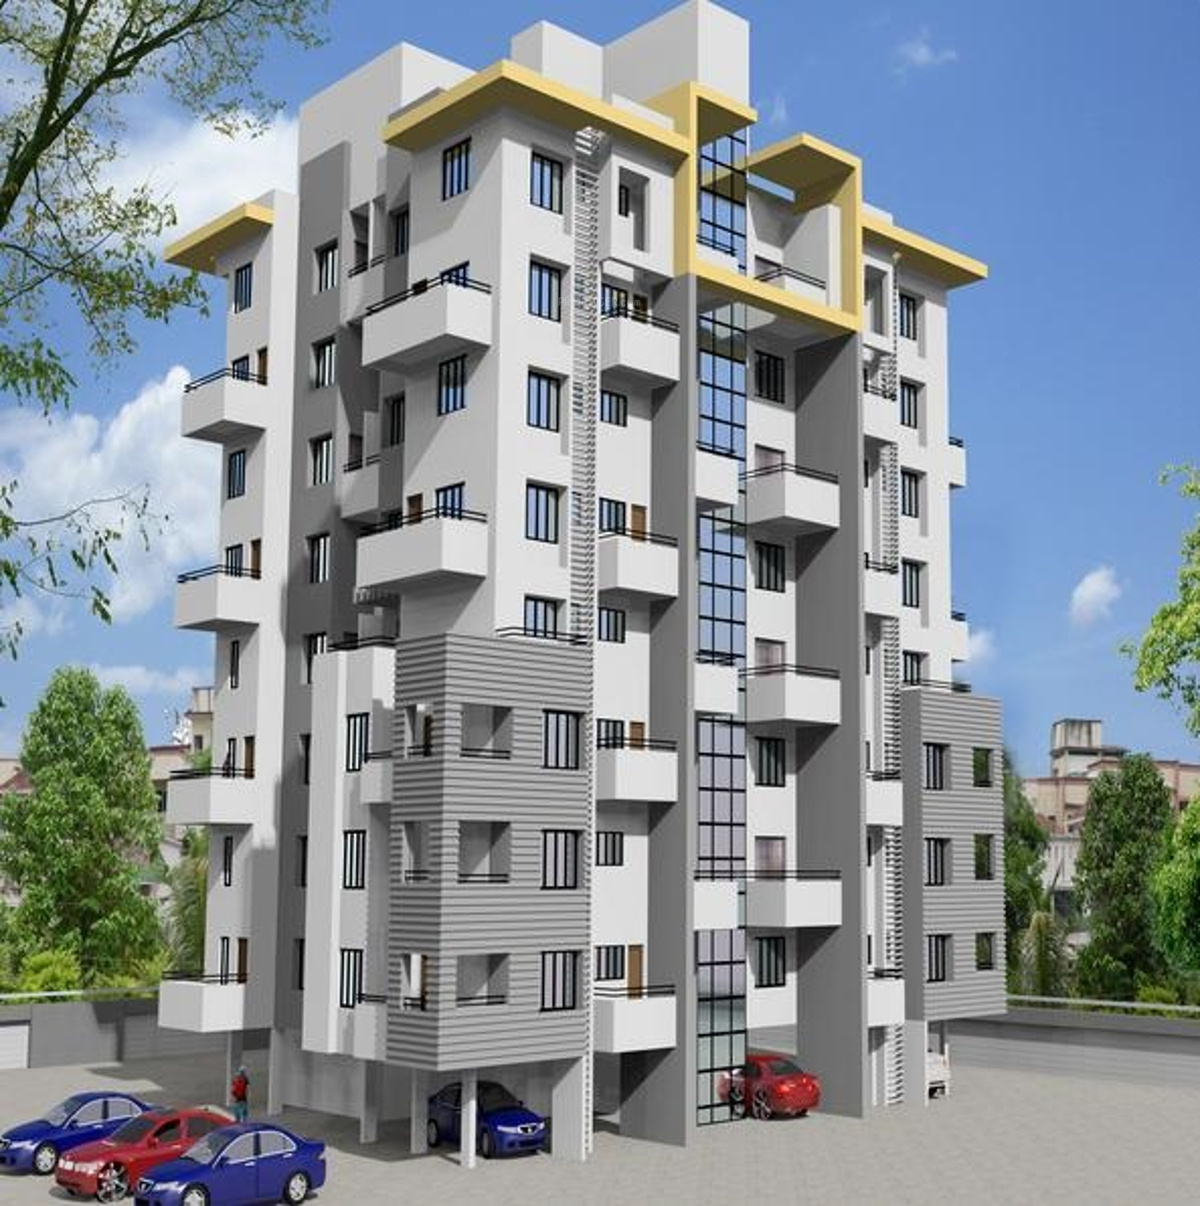 Aluminium Modular Kitchen At Rs 1100 Square Feet: 1100 Sq Ft 2 BHK 2T Apartment For Sale In DS Group Pune